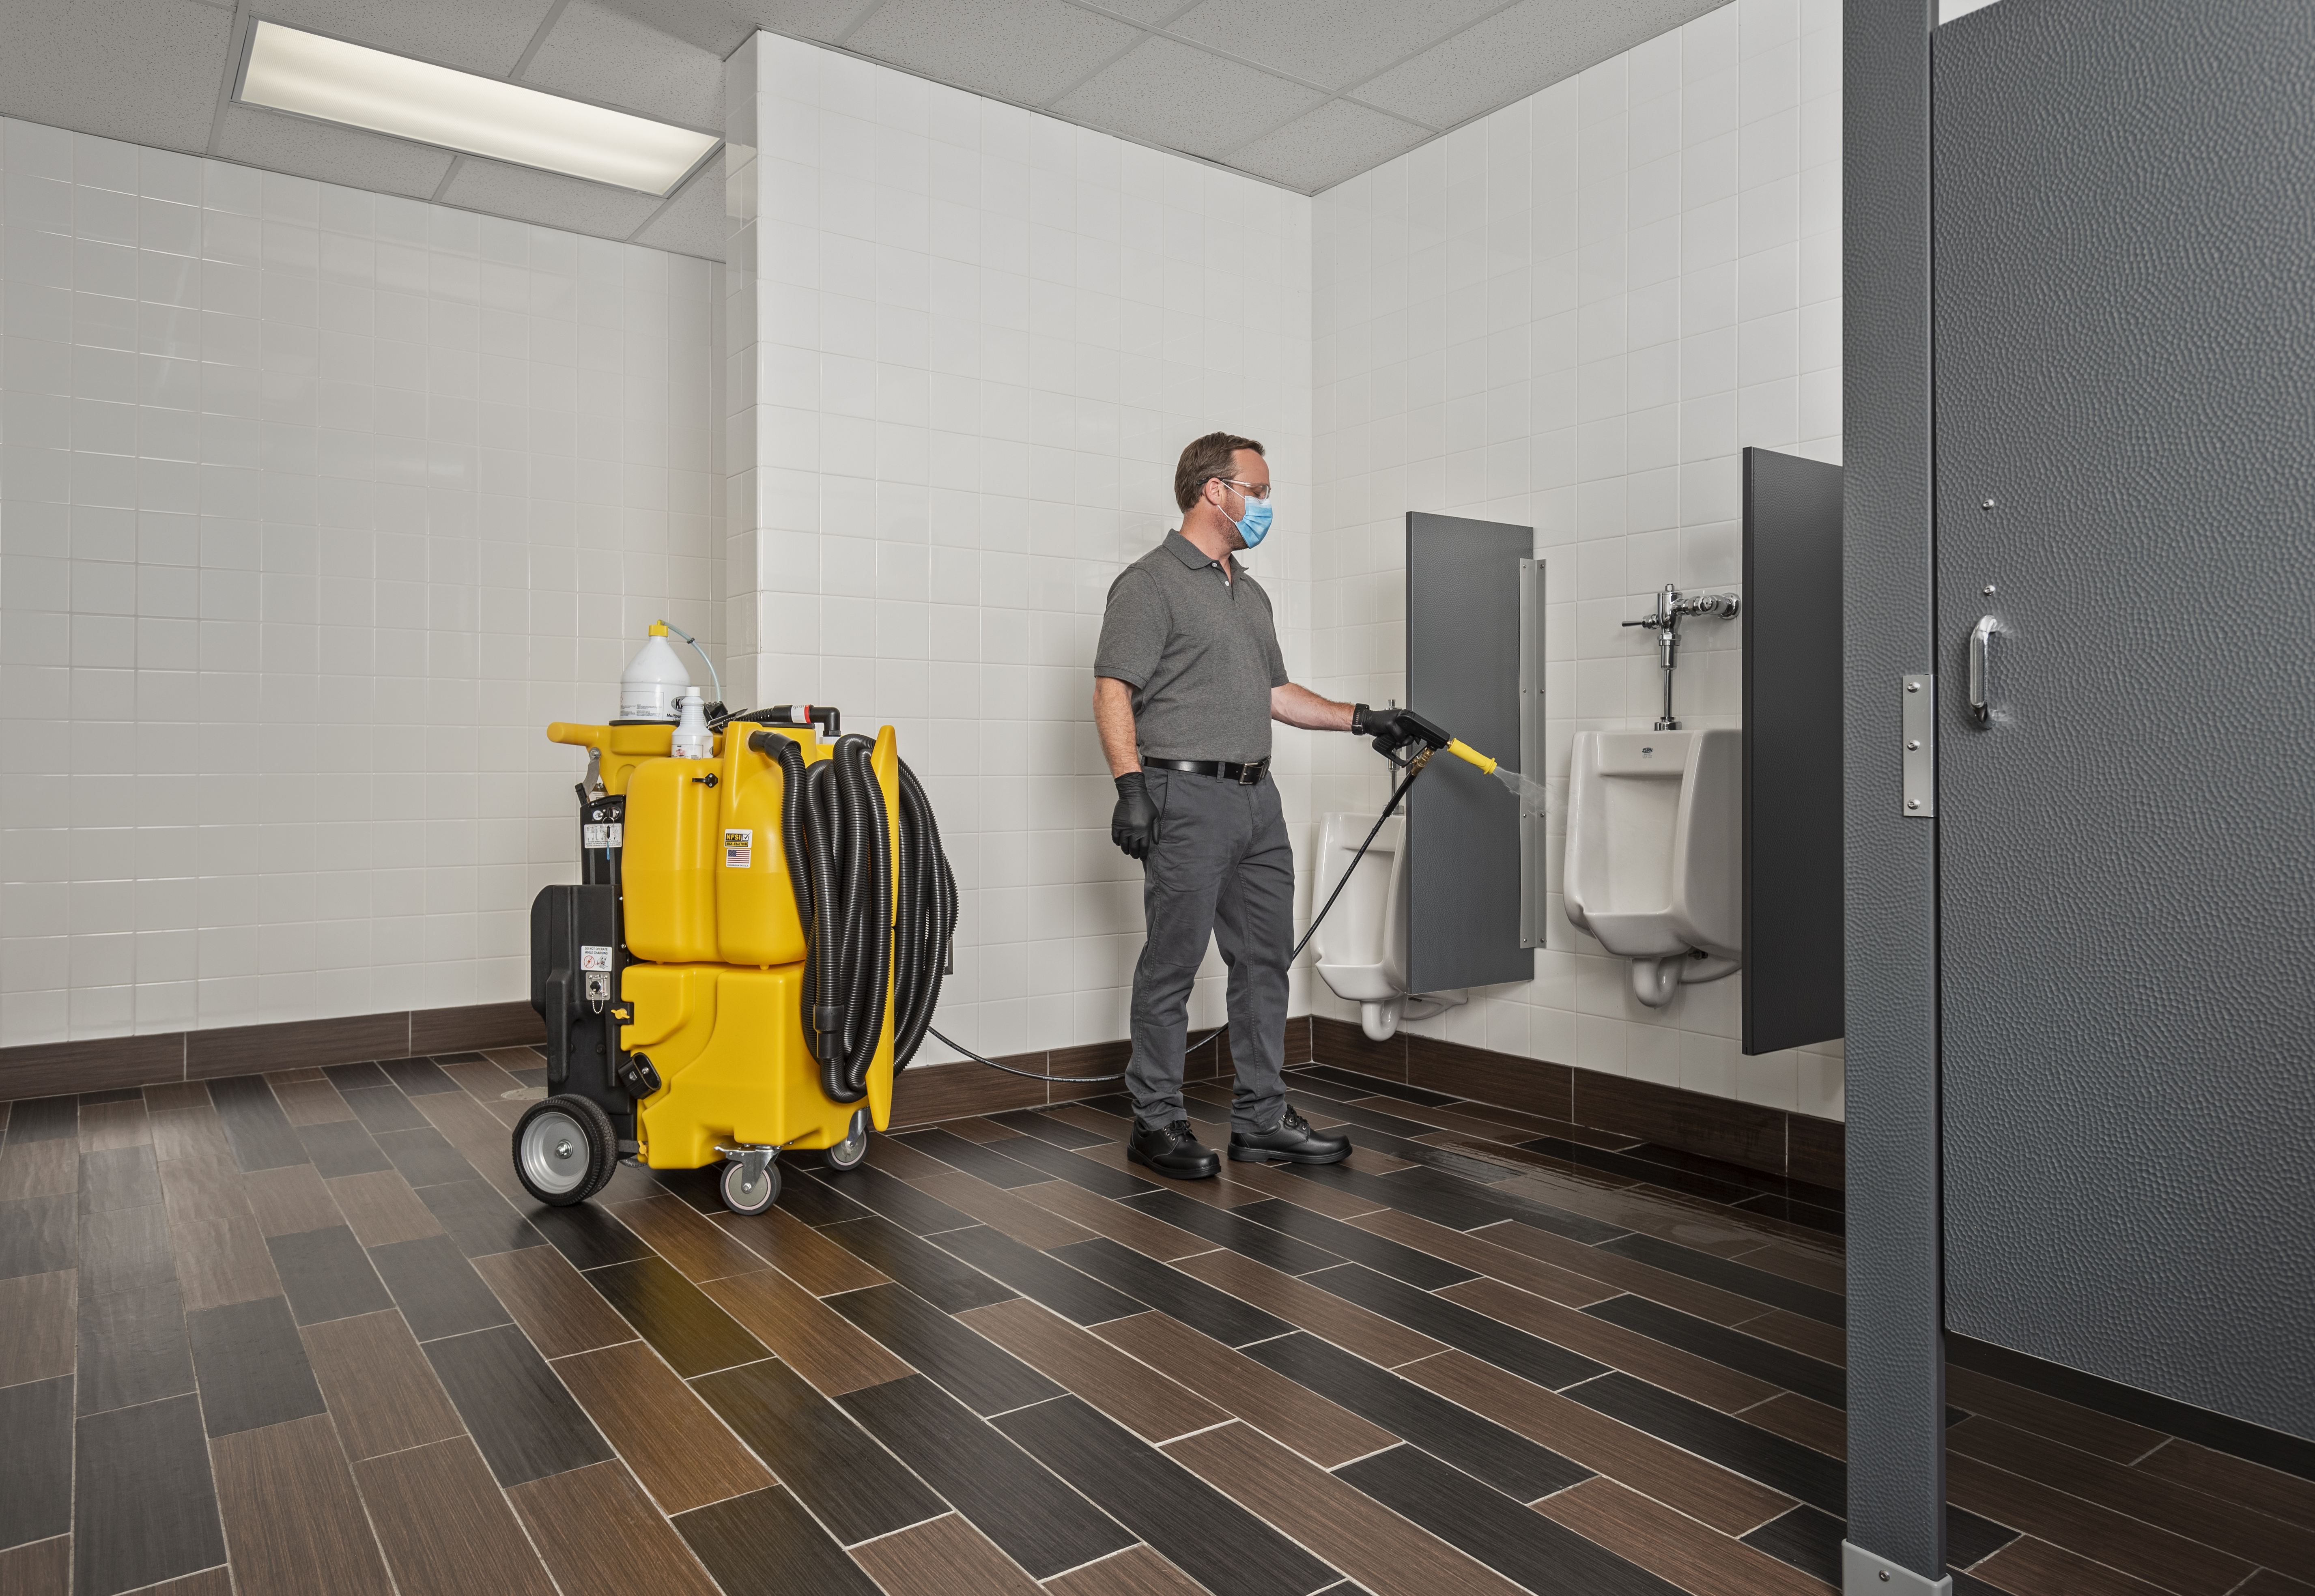 NTC 1750 Urinal Spraying